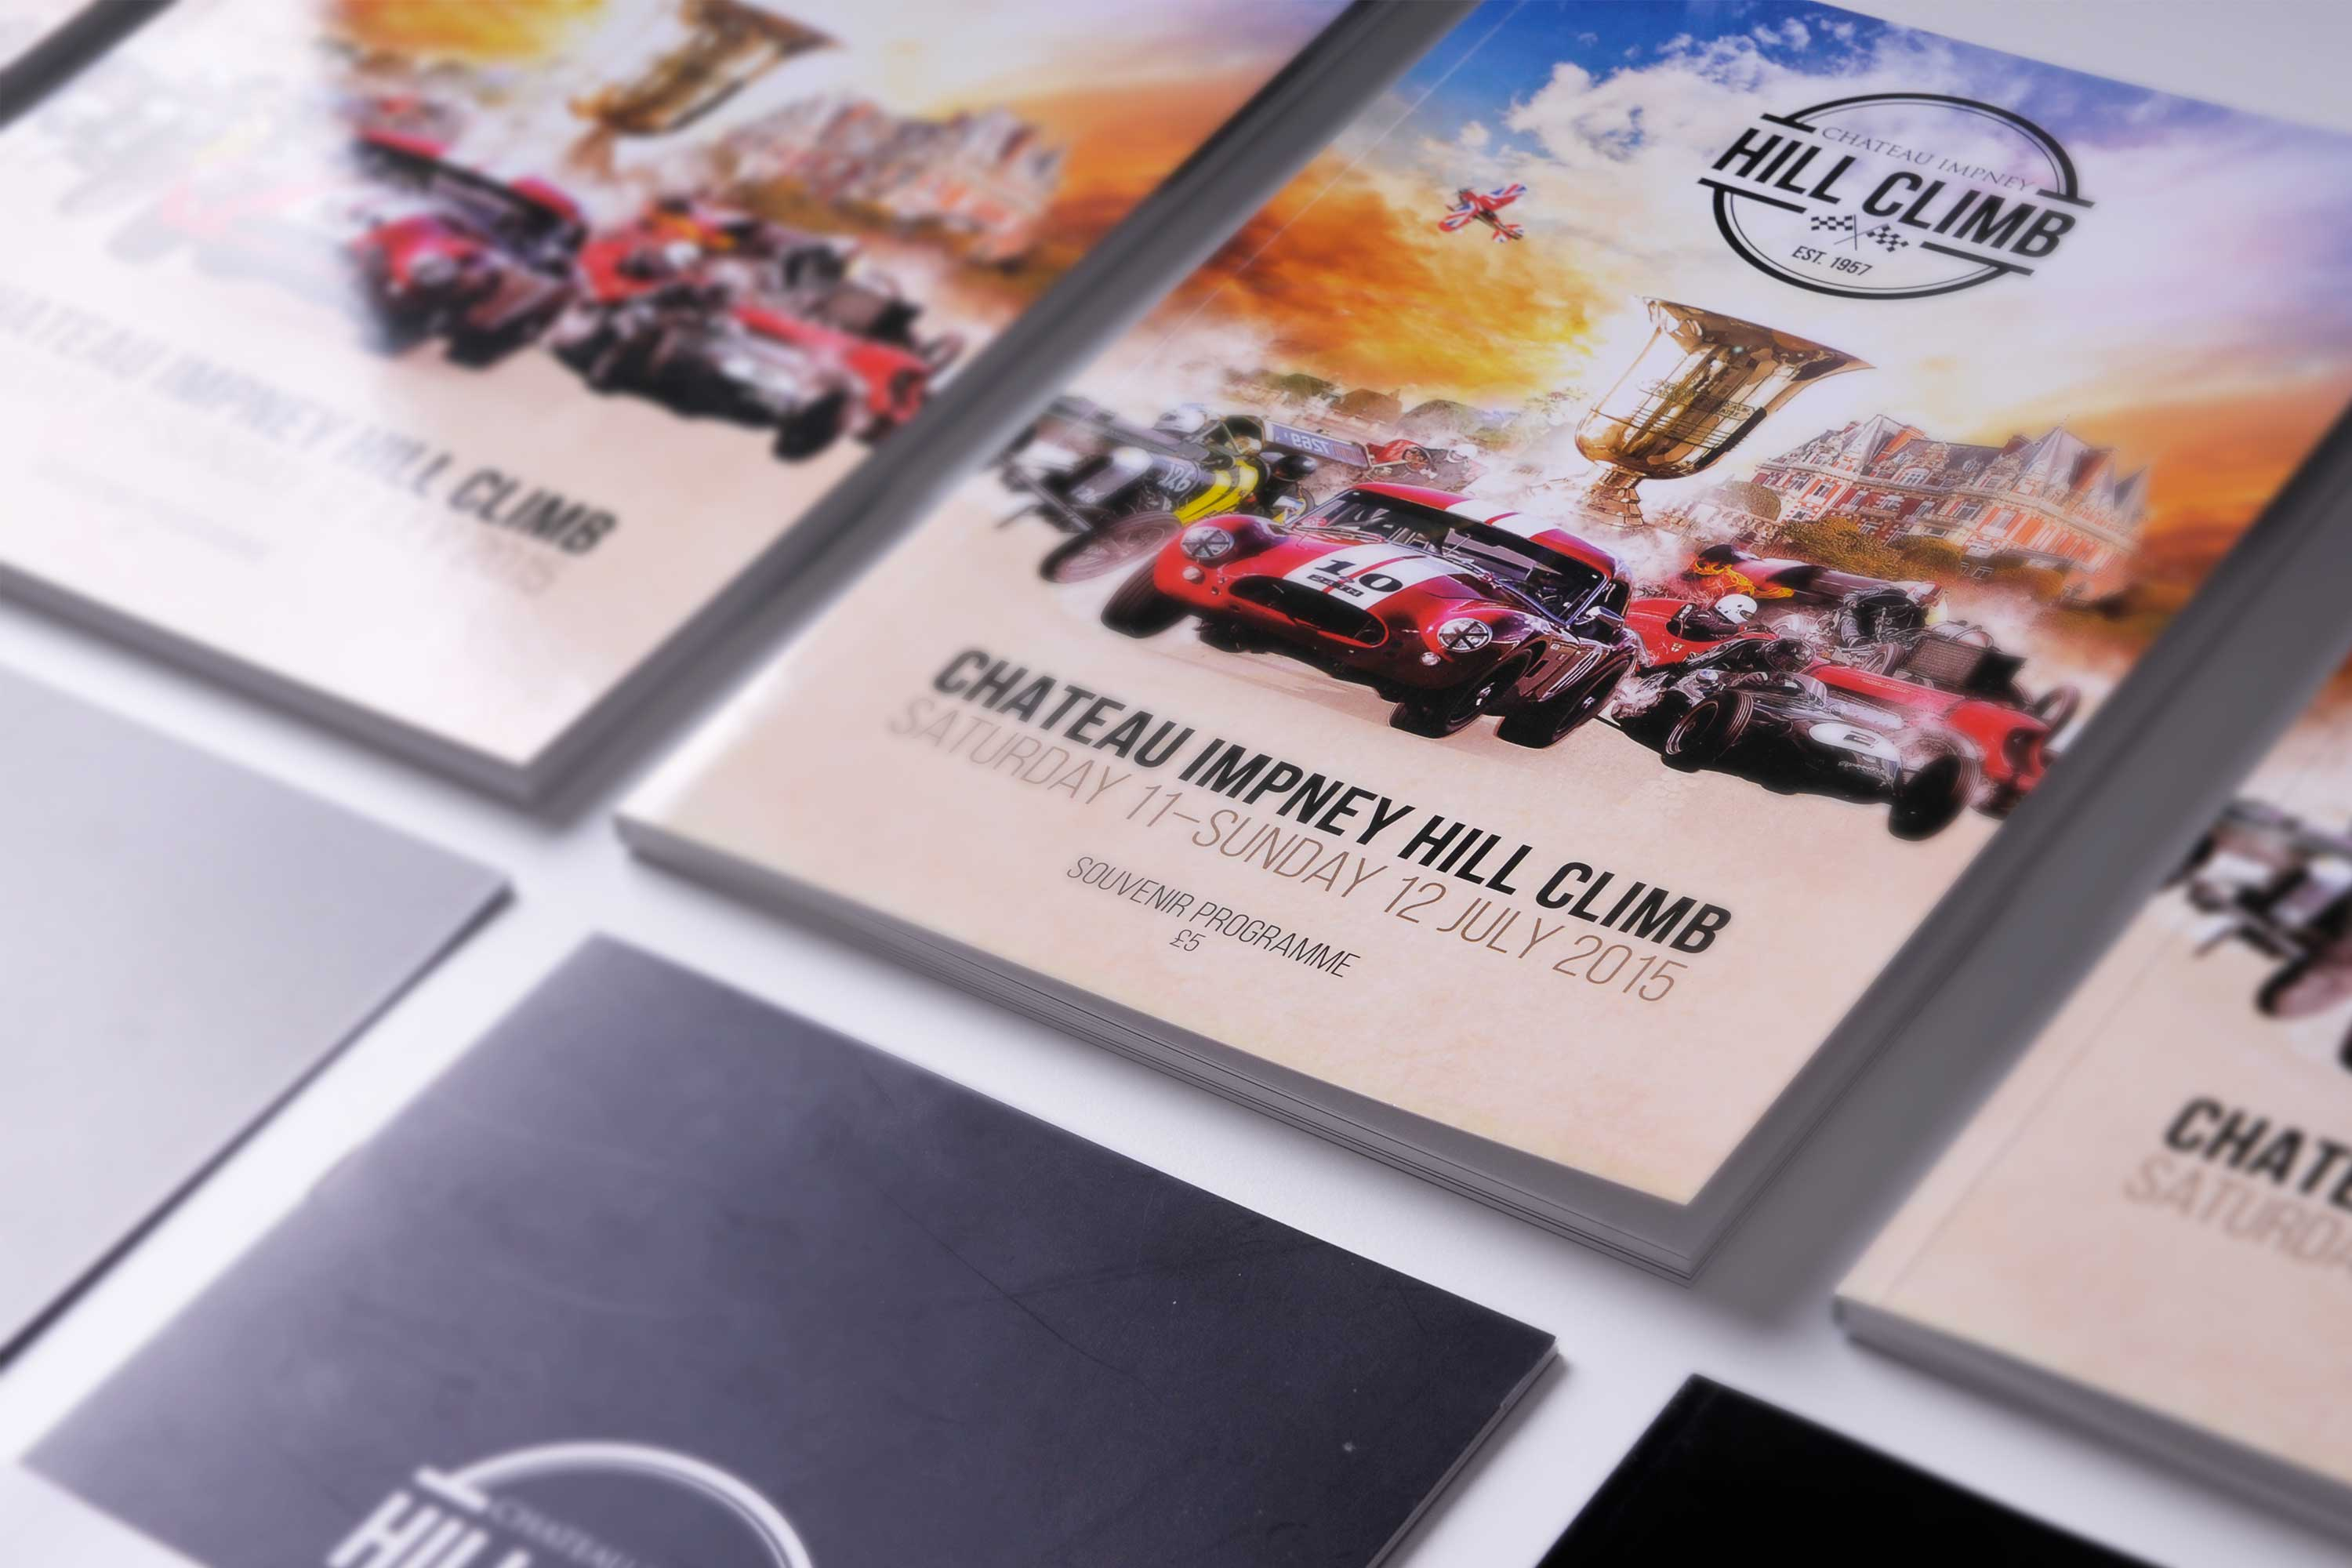 Programme design for Chateau Impney Hill Climb, marketing agency Worcester